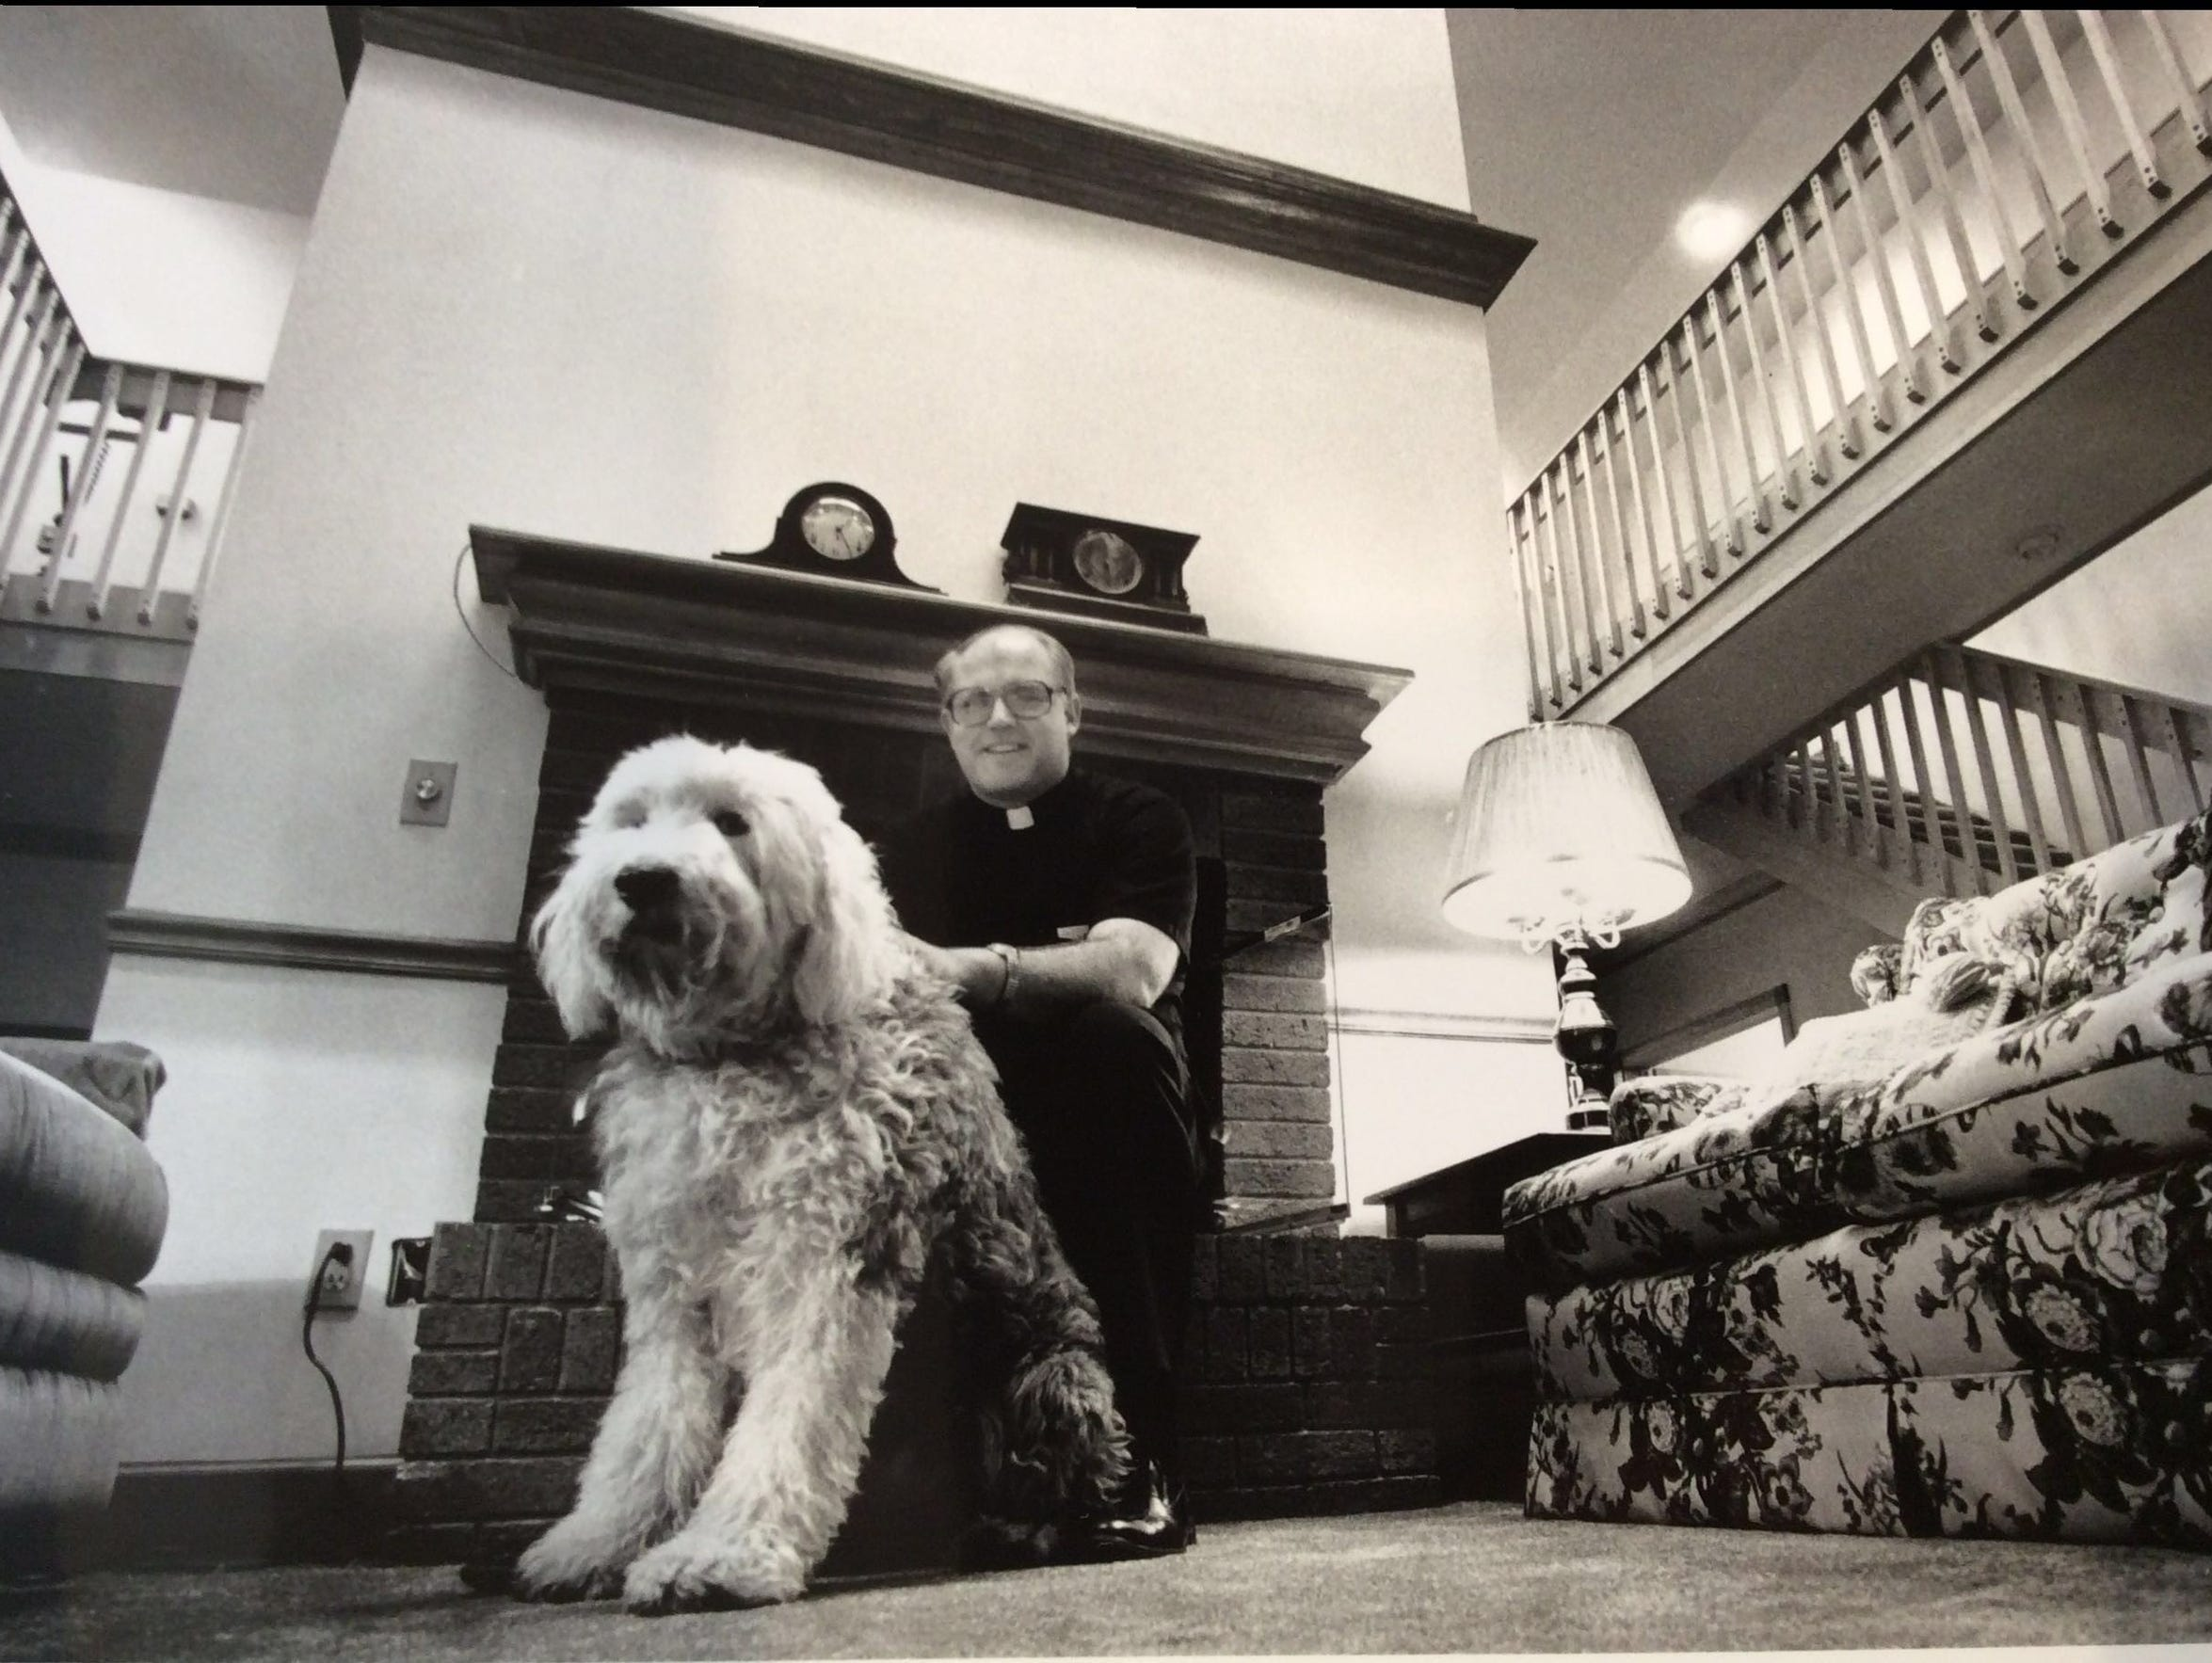 The Rev. Jonathan Wehrle poses with his sheepdog Thumper